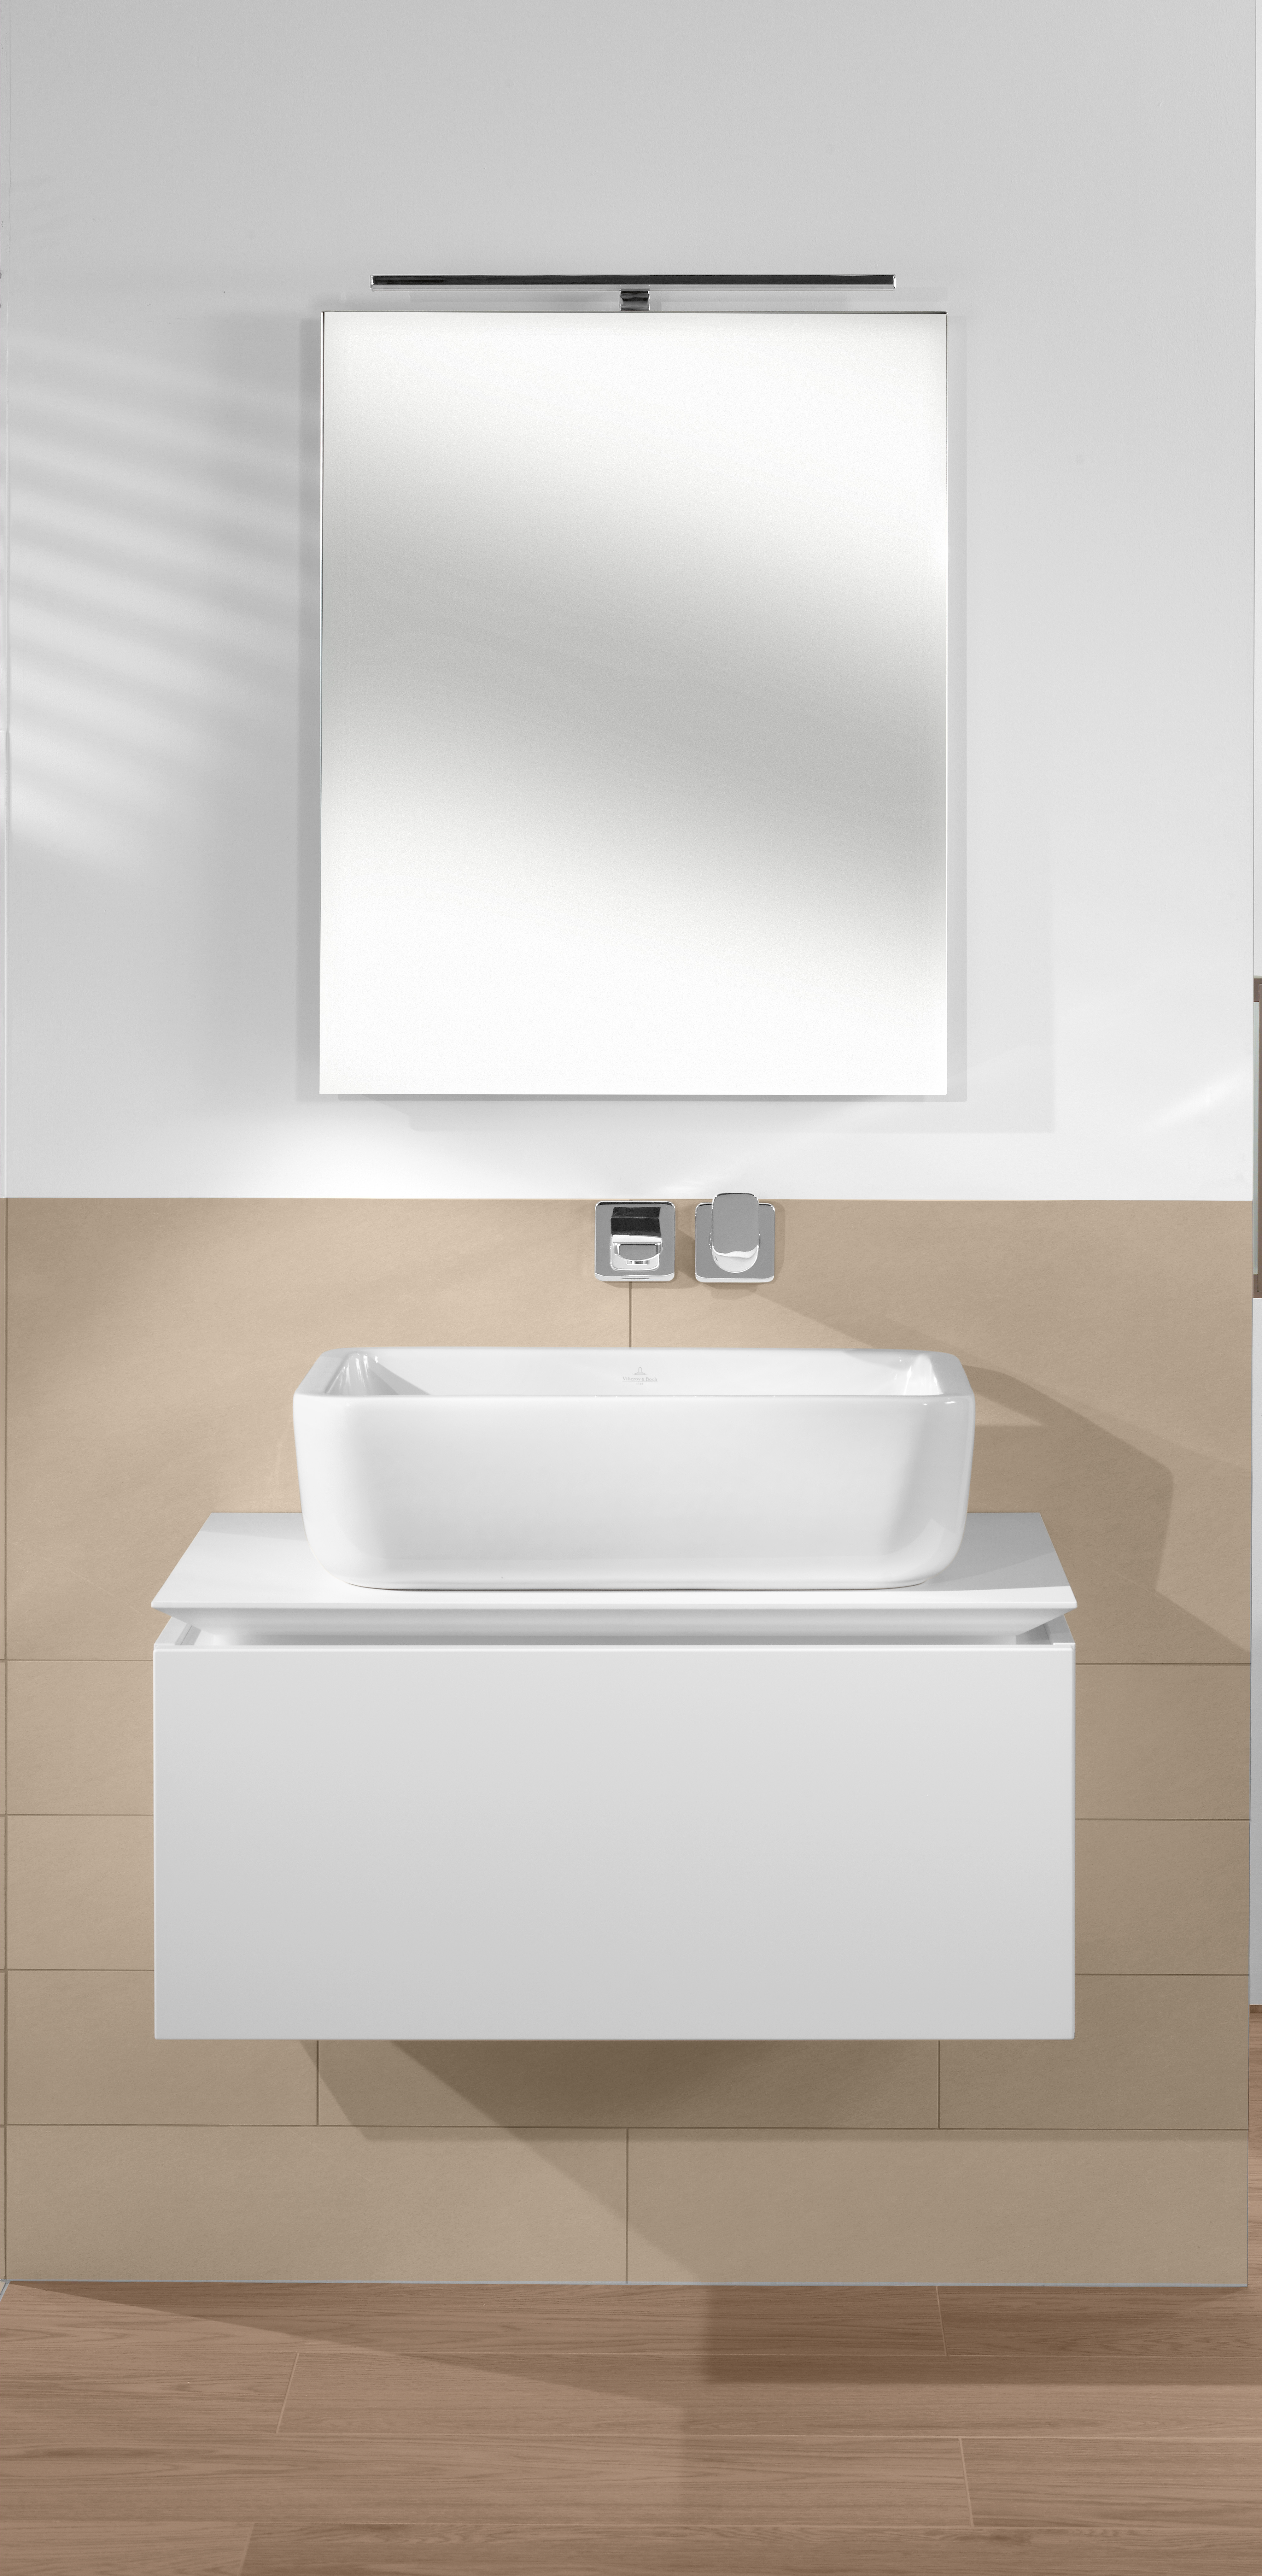 Architectura Washbasin, Surface-mounted washbasin, Washbasins, Surface-mounted washbasins